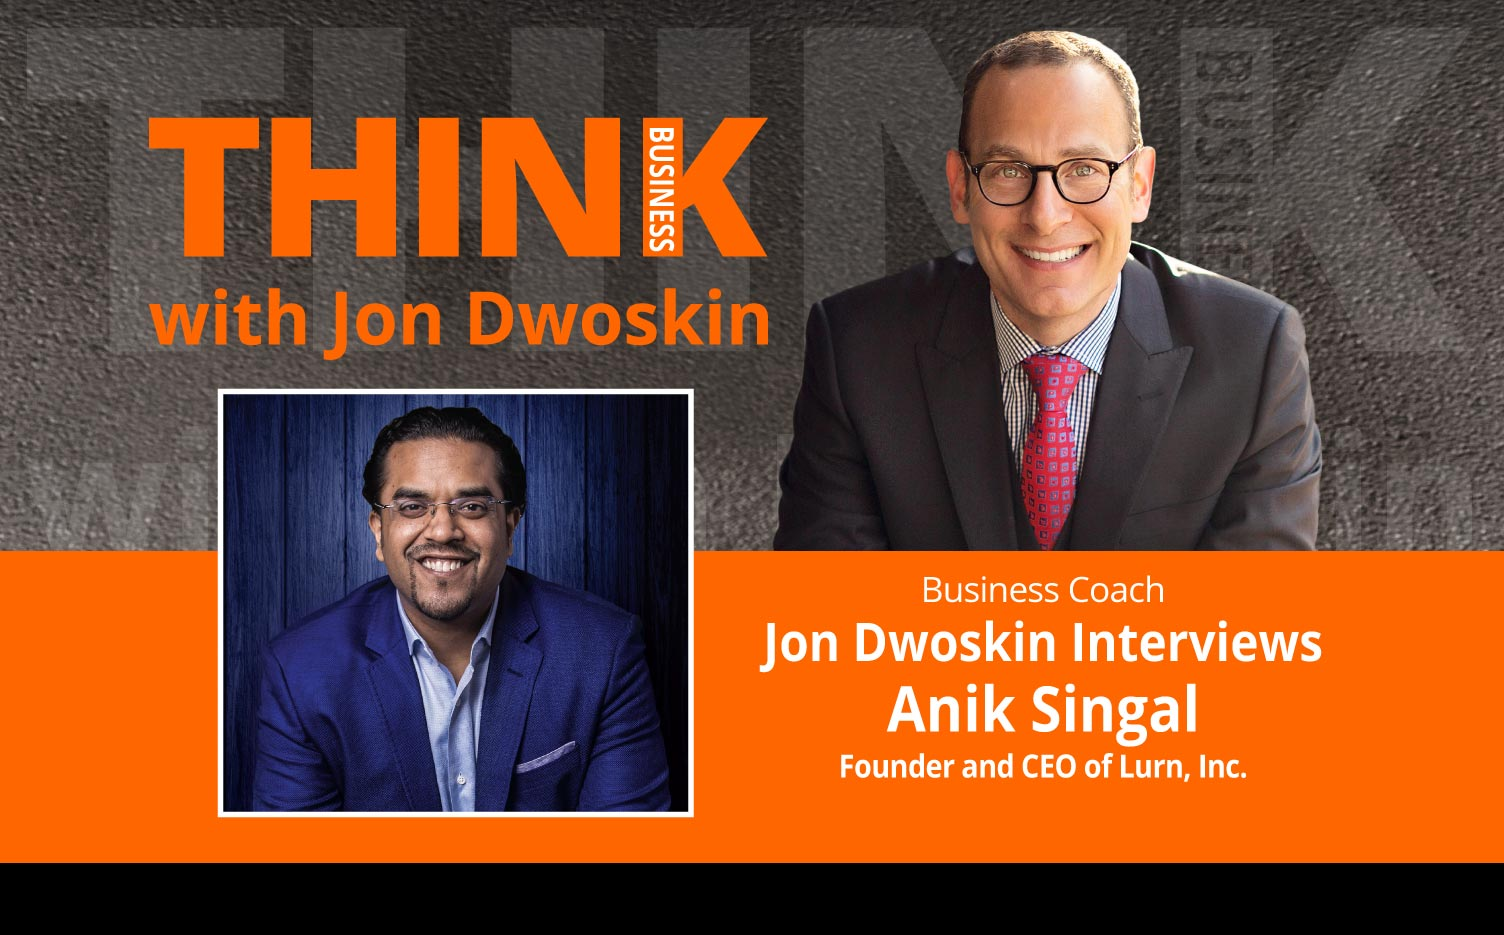 THINK Business Podcast: Jon Dwoskin Interviews Anik Singal, Founder and CEO, Lurn, Inc.